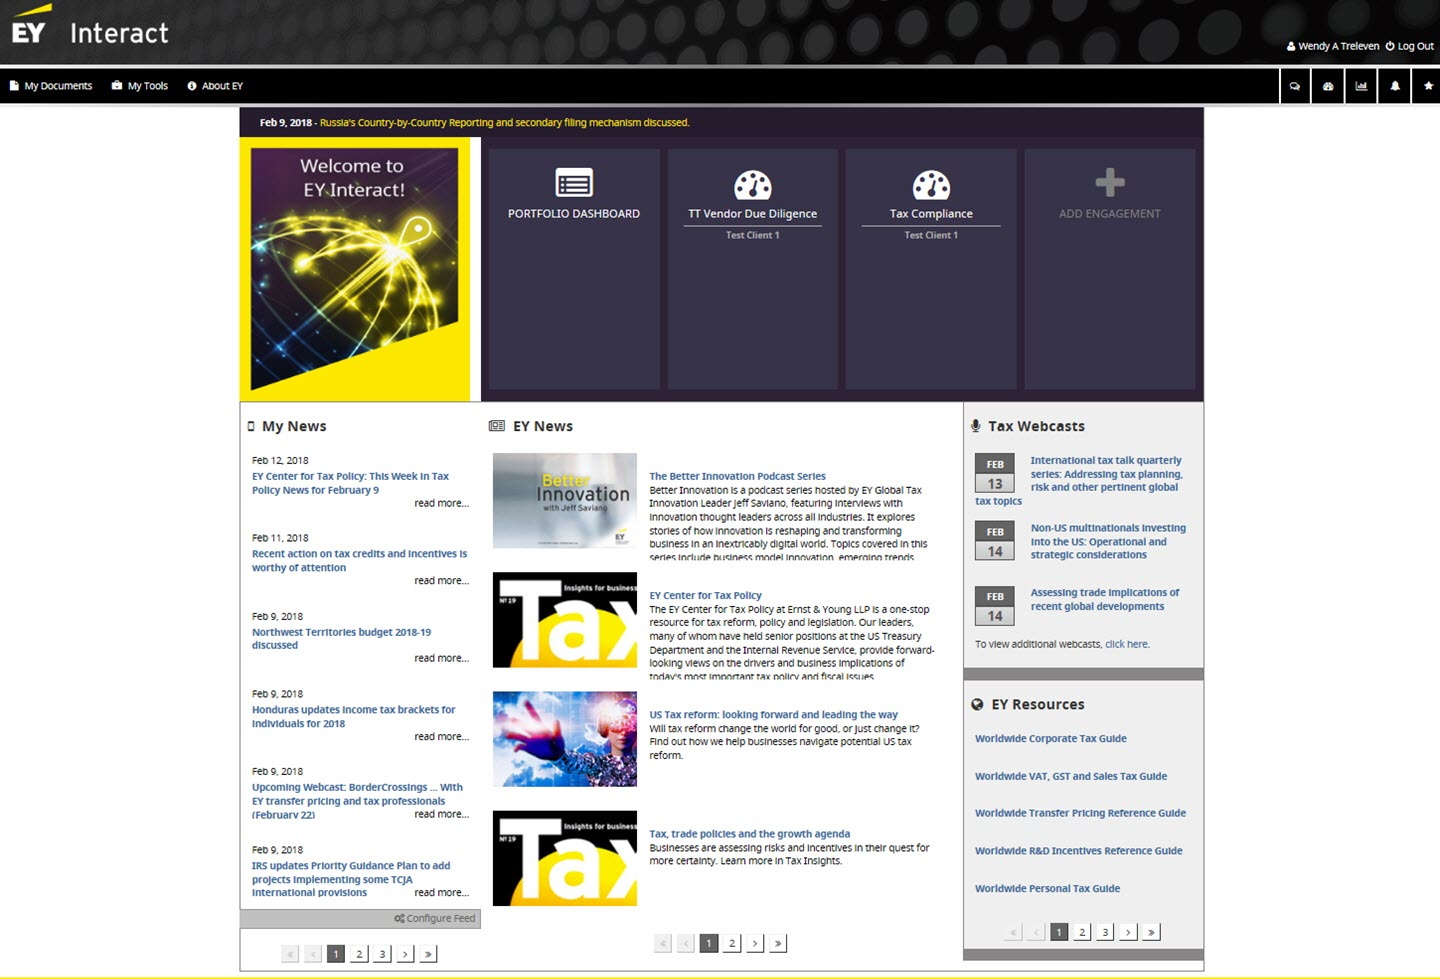 EY Interact – a closer look at the engagement dashboard